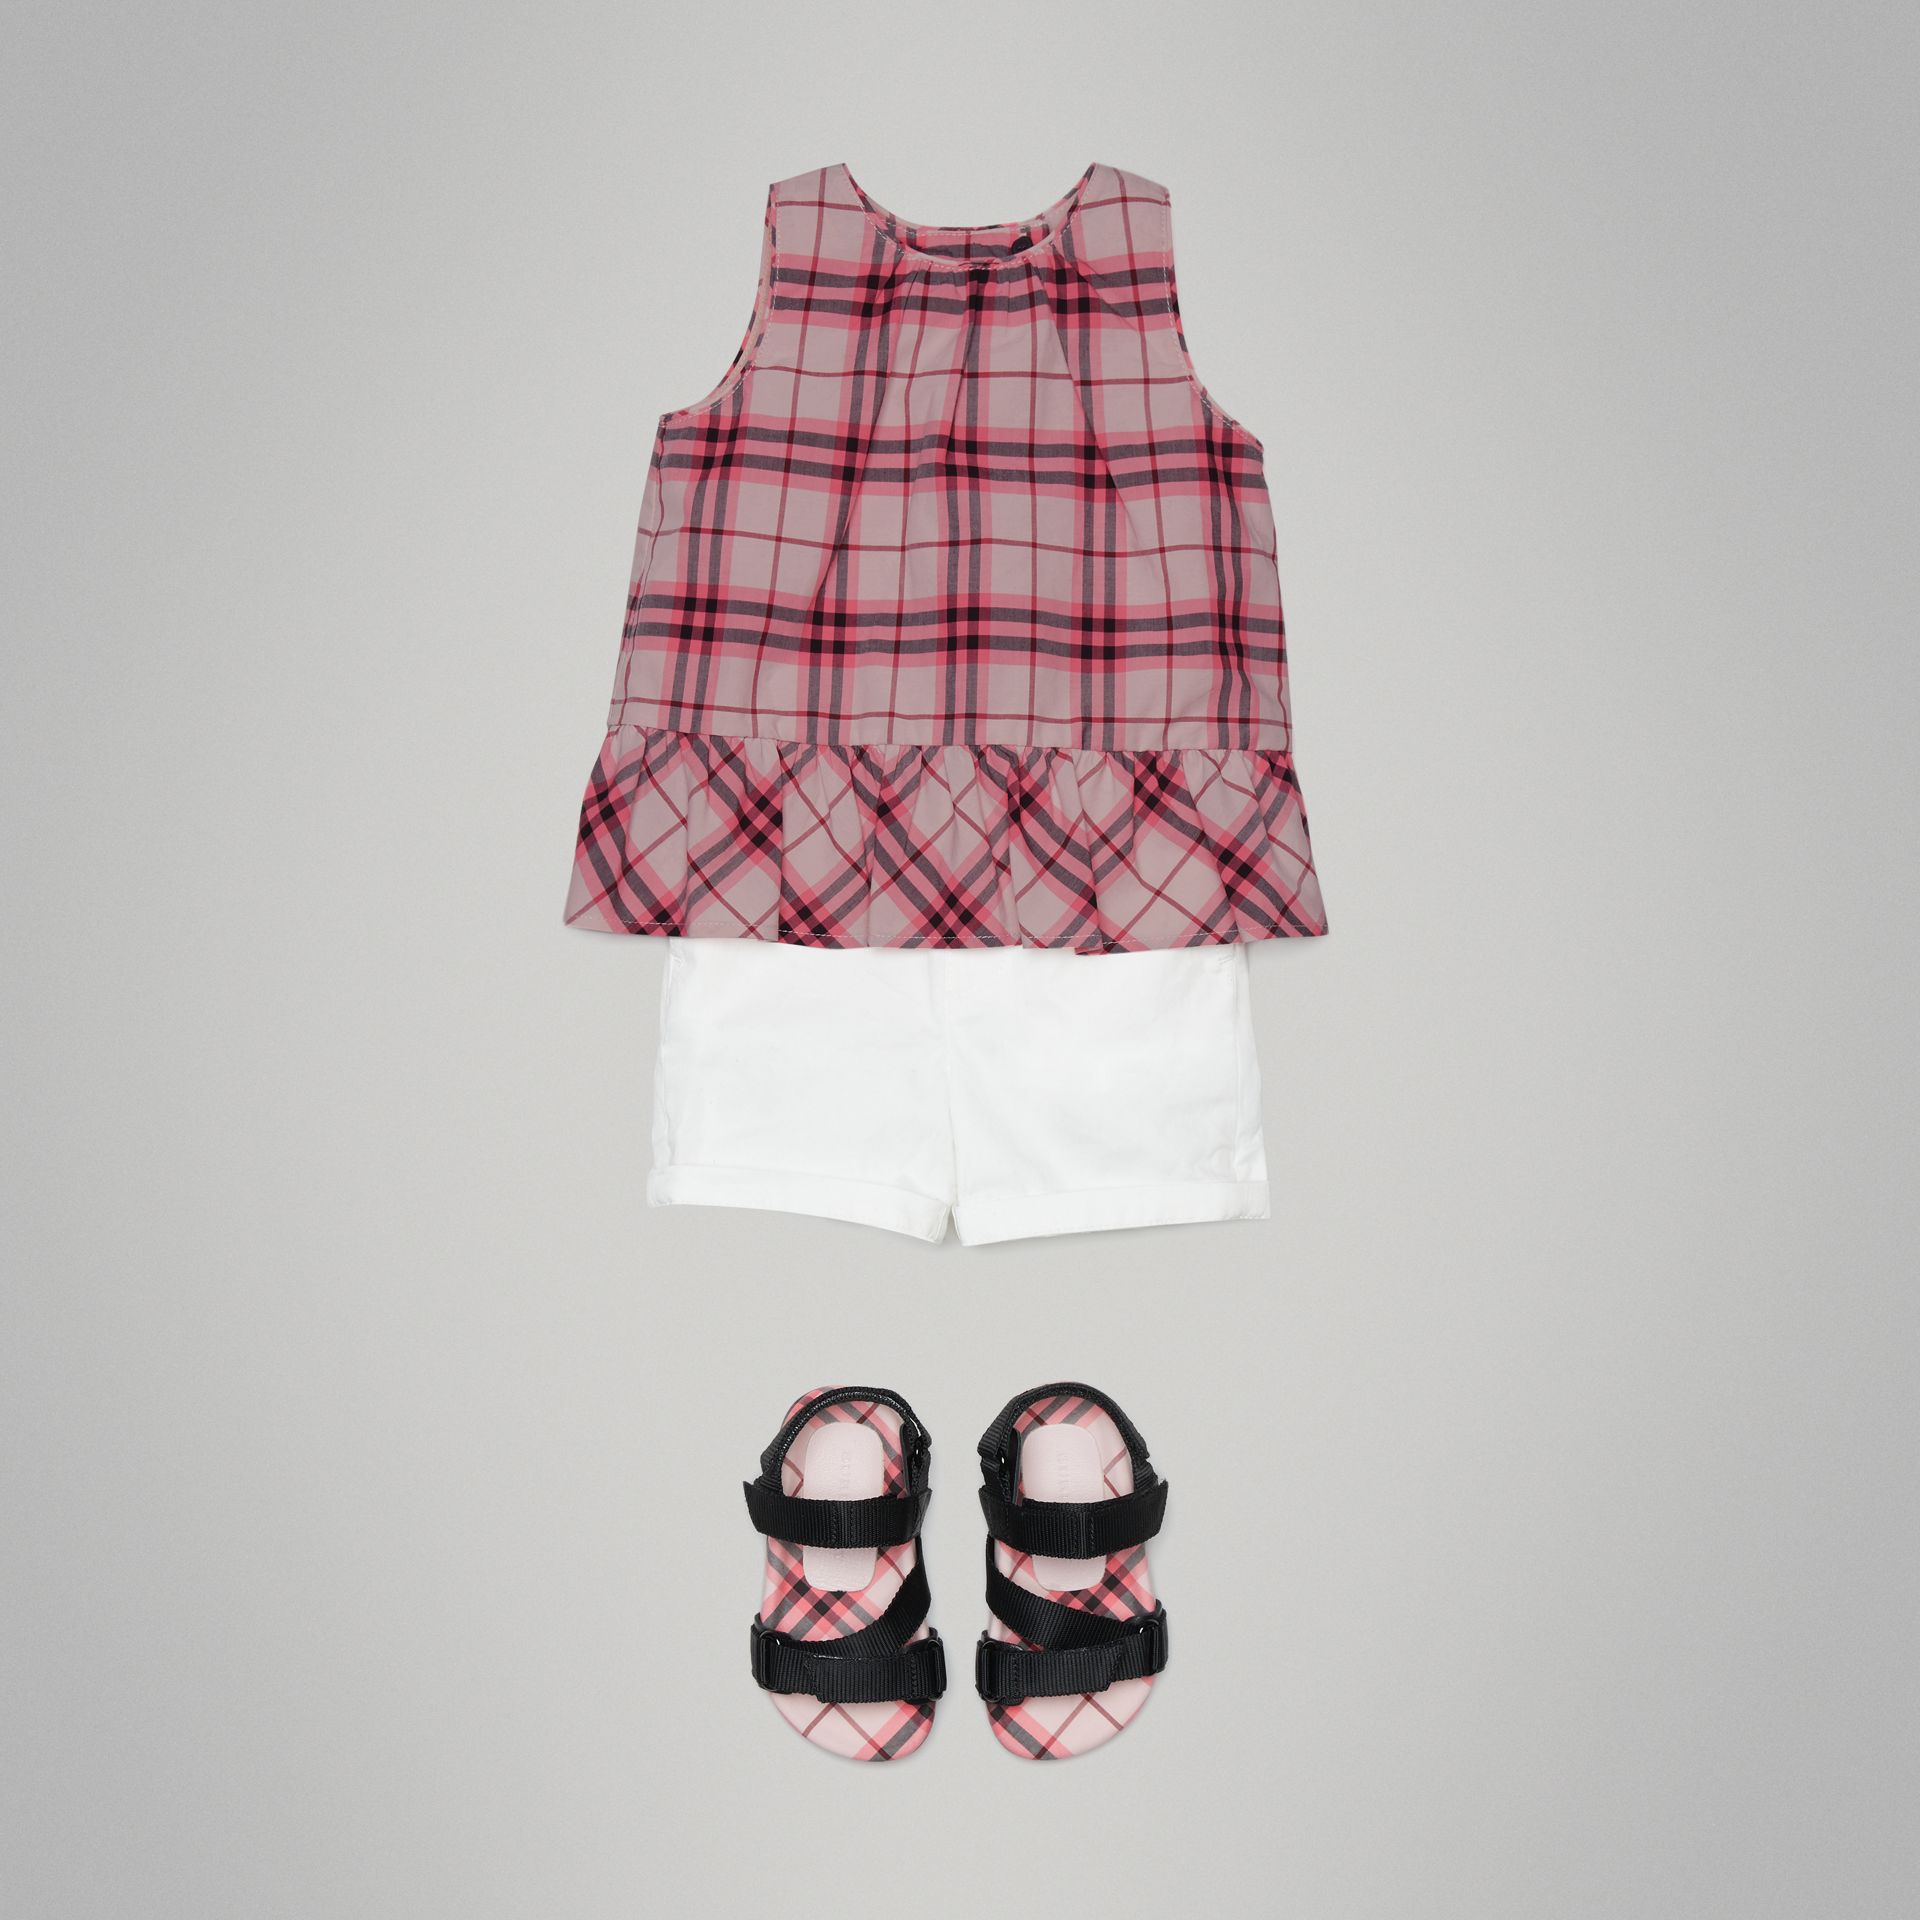 Haut en coton à motif check avec volants (Rose Vif) - Enfant | Burberry Canada - photo de la galerie 1